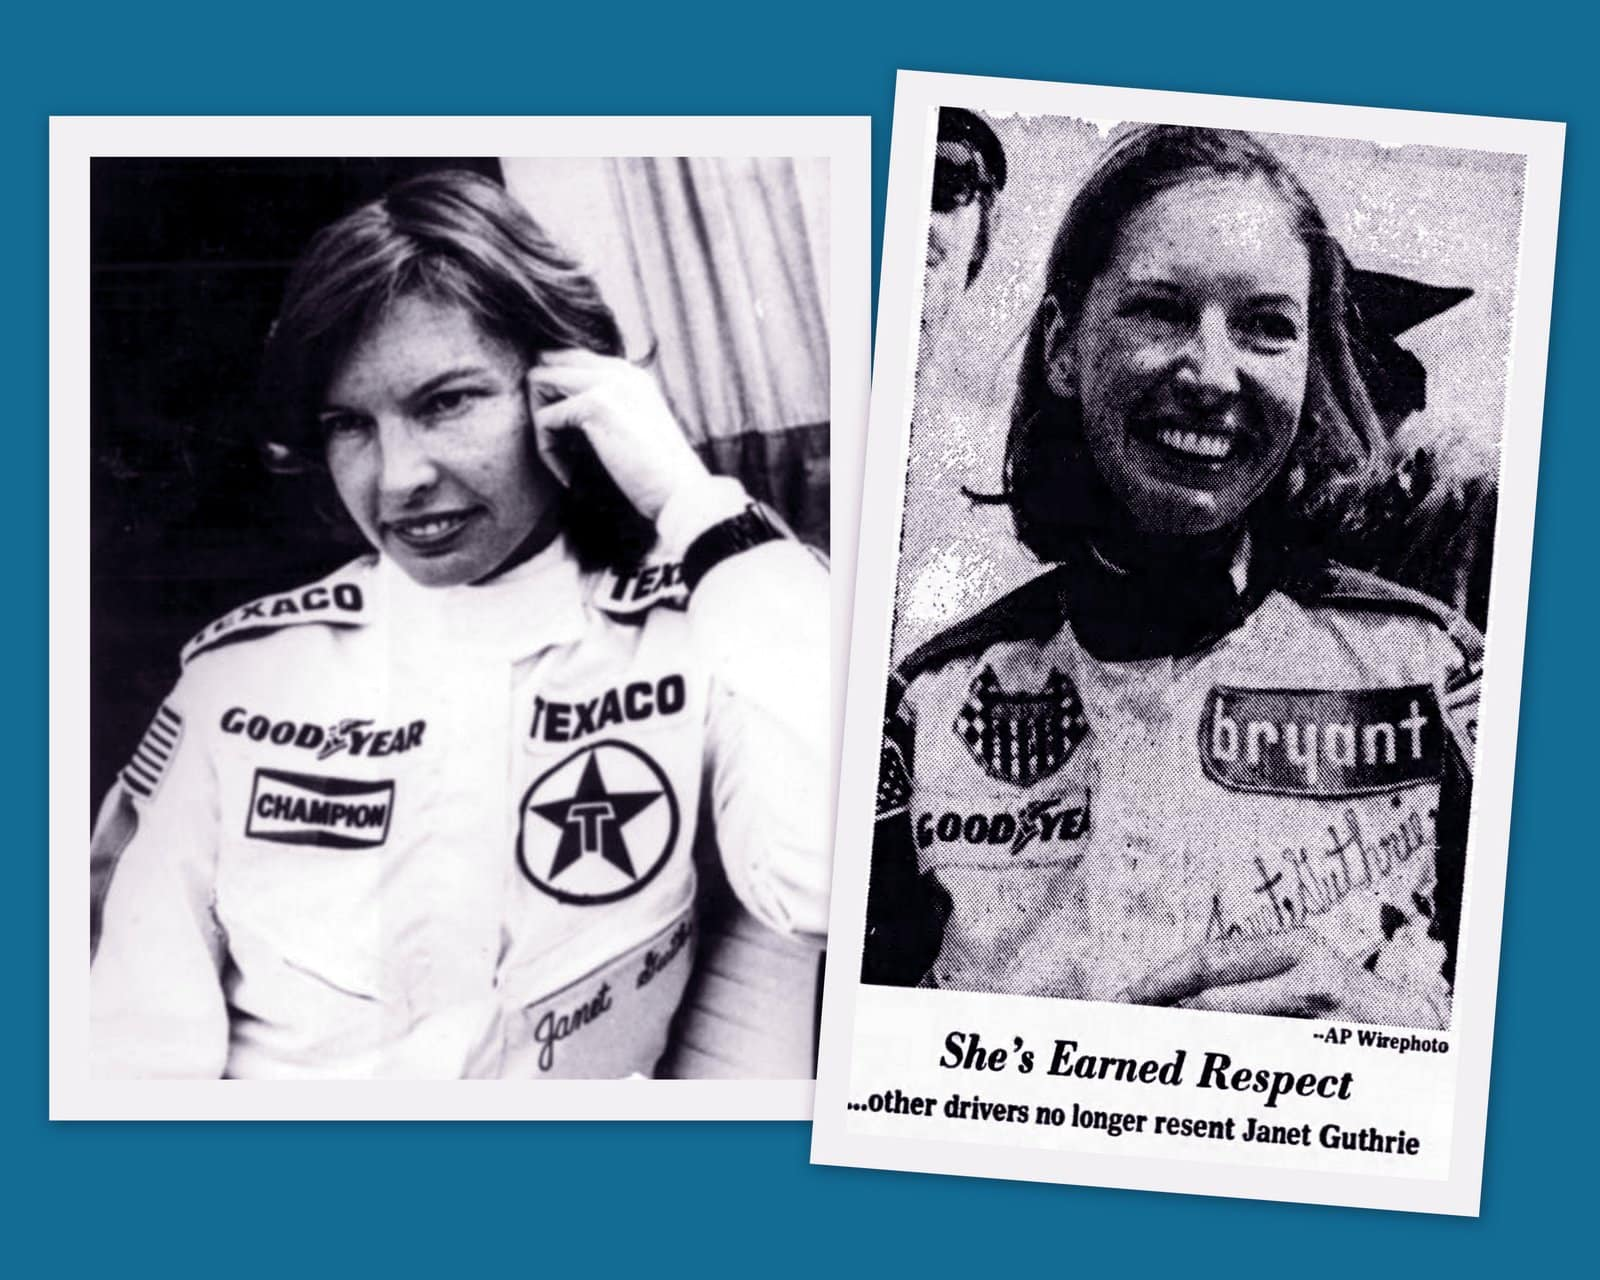 1970s Race car driver Janet Guthrie